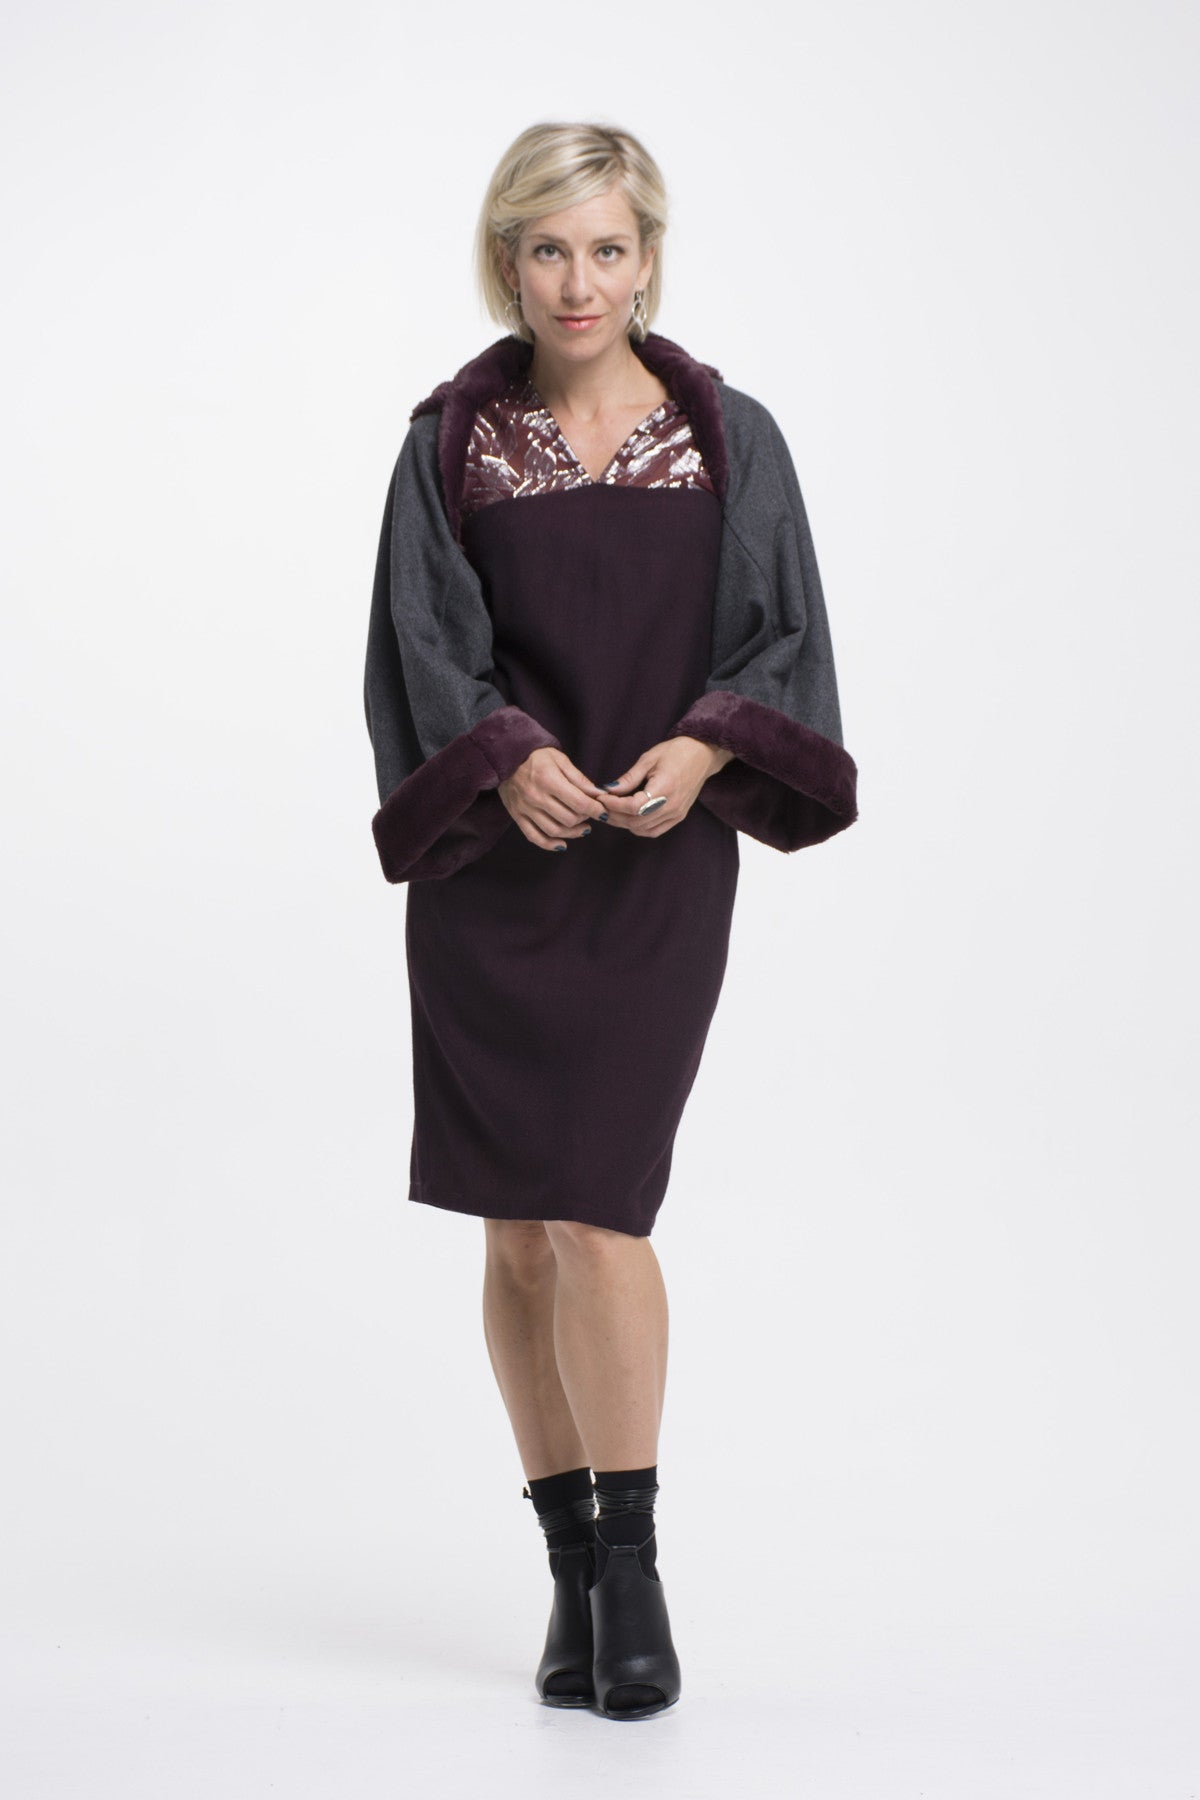 Vesta Wool and Fur Shrug - Steel Berry